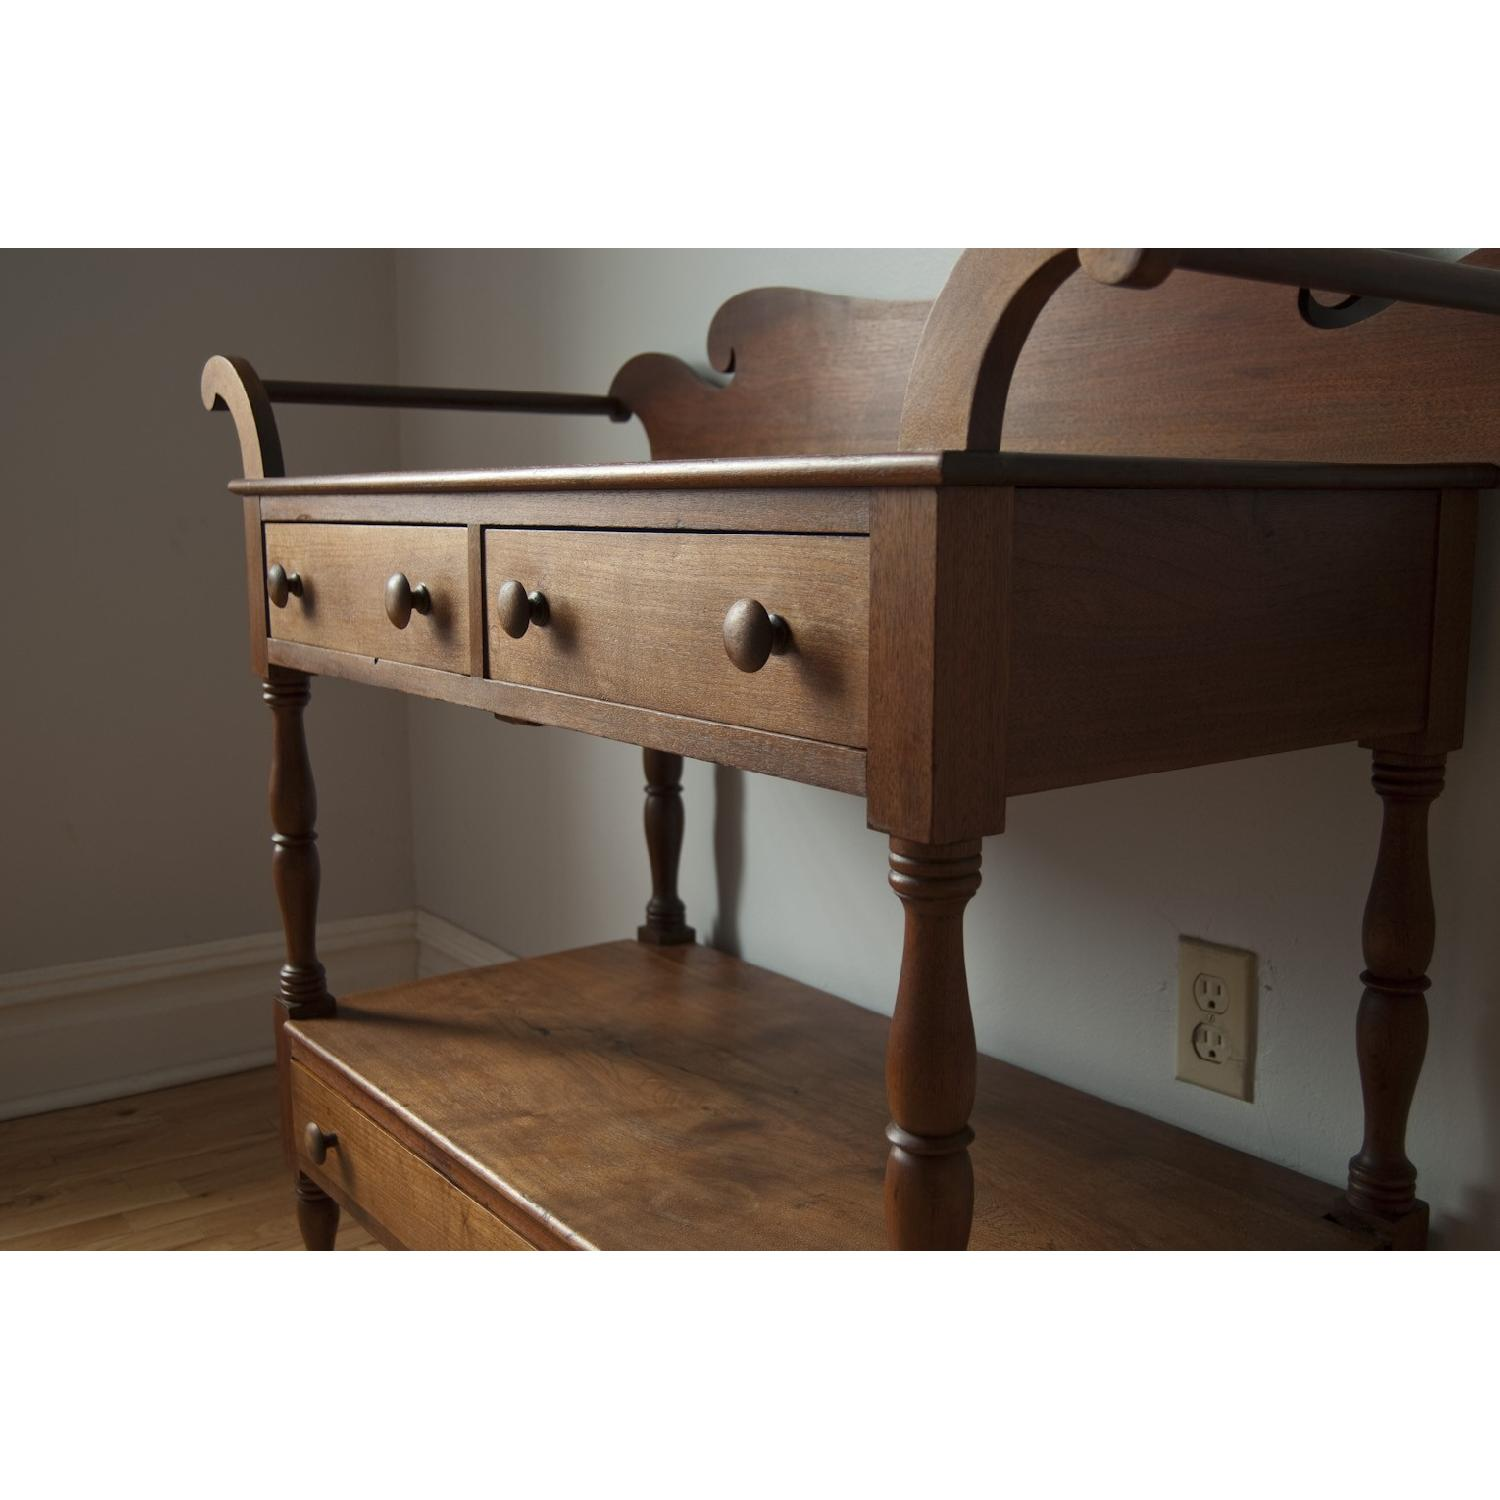 Late 1800s Solid Walnut Shaker-Style Dry Sink-3